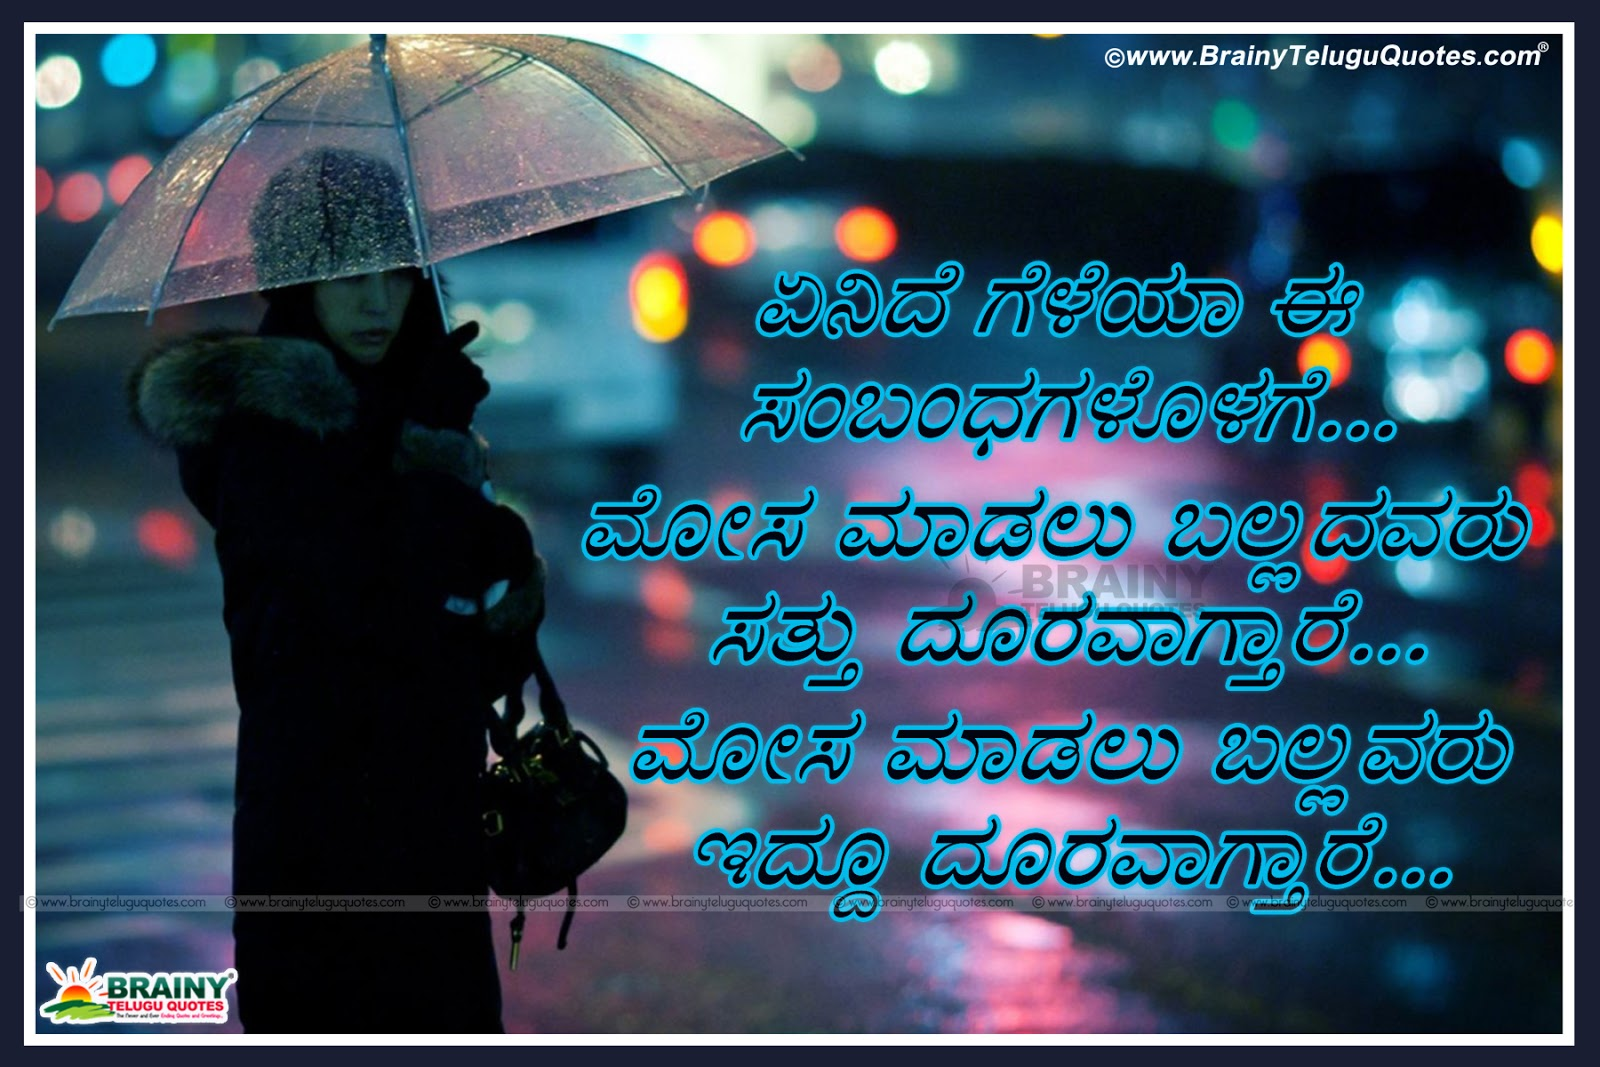 Sad Feeling Kannada Images: Missing You Valentines Day Quotes Kavangulu In Kannada